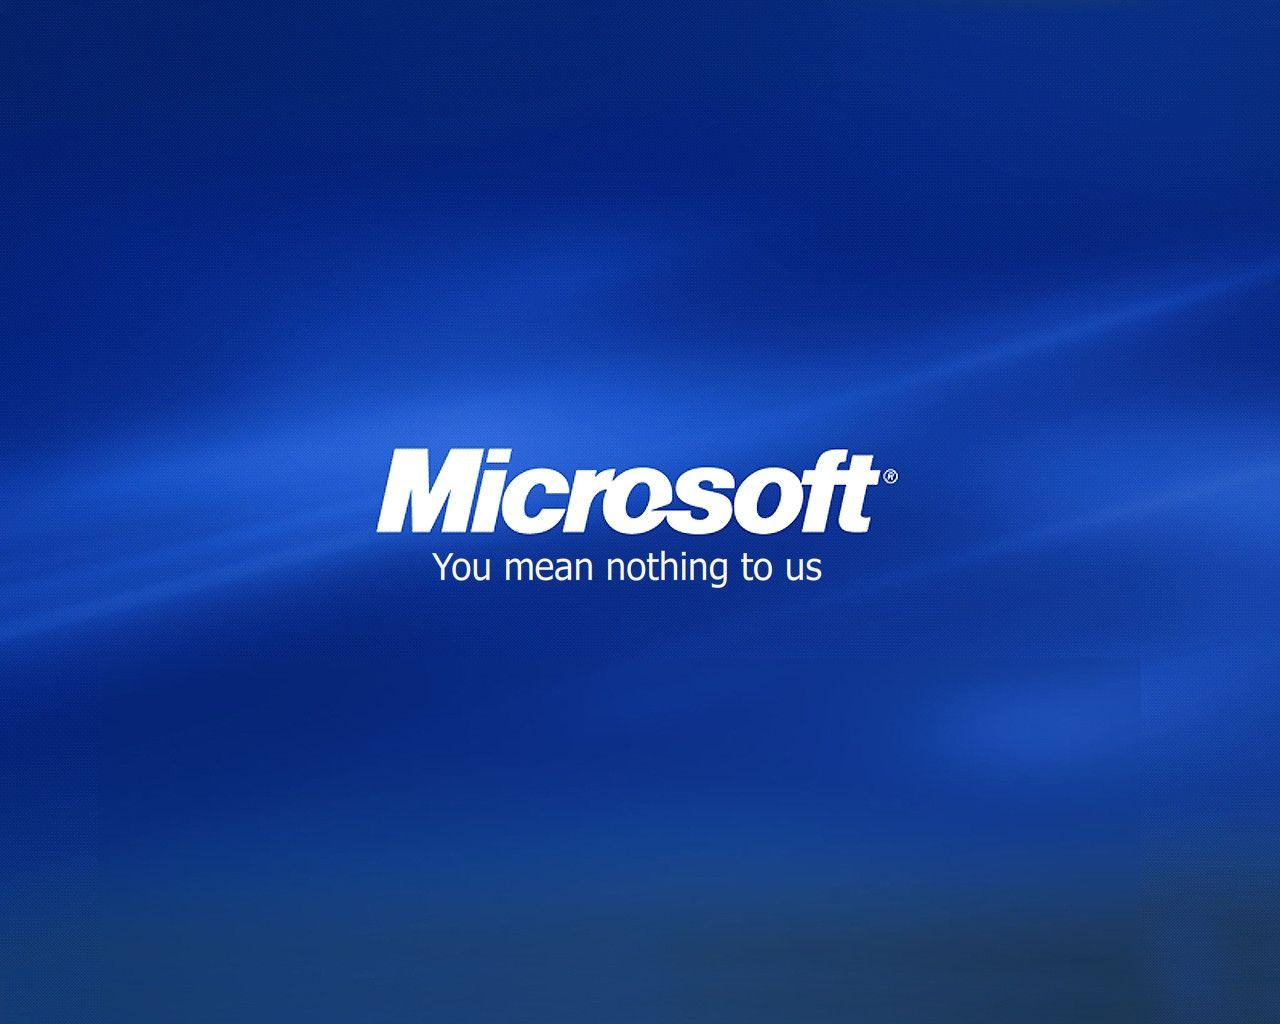 6 Microsoft Wallpapers